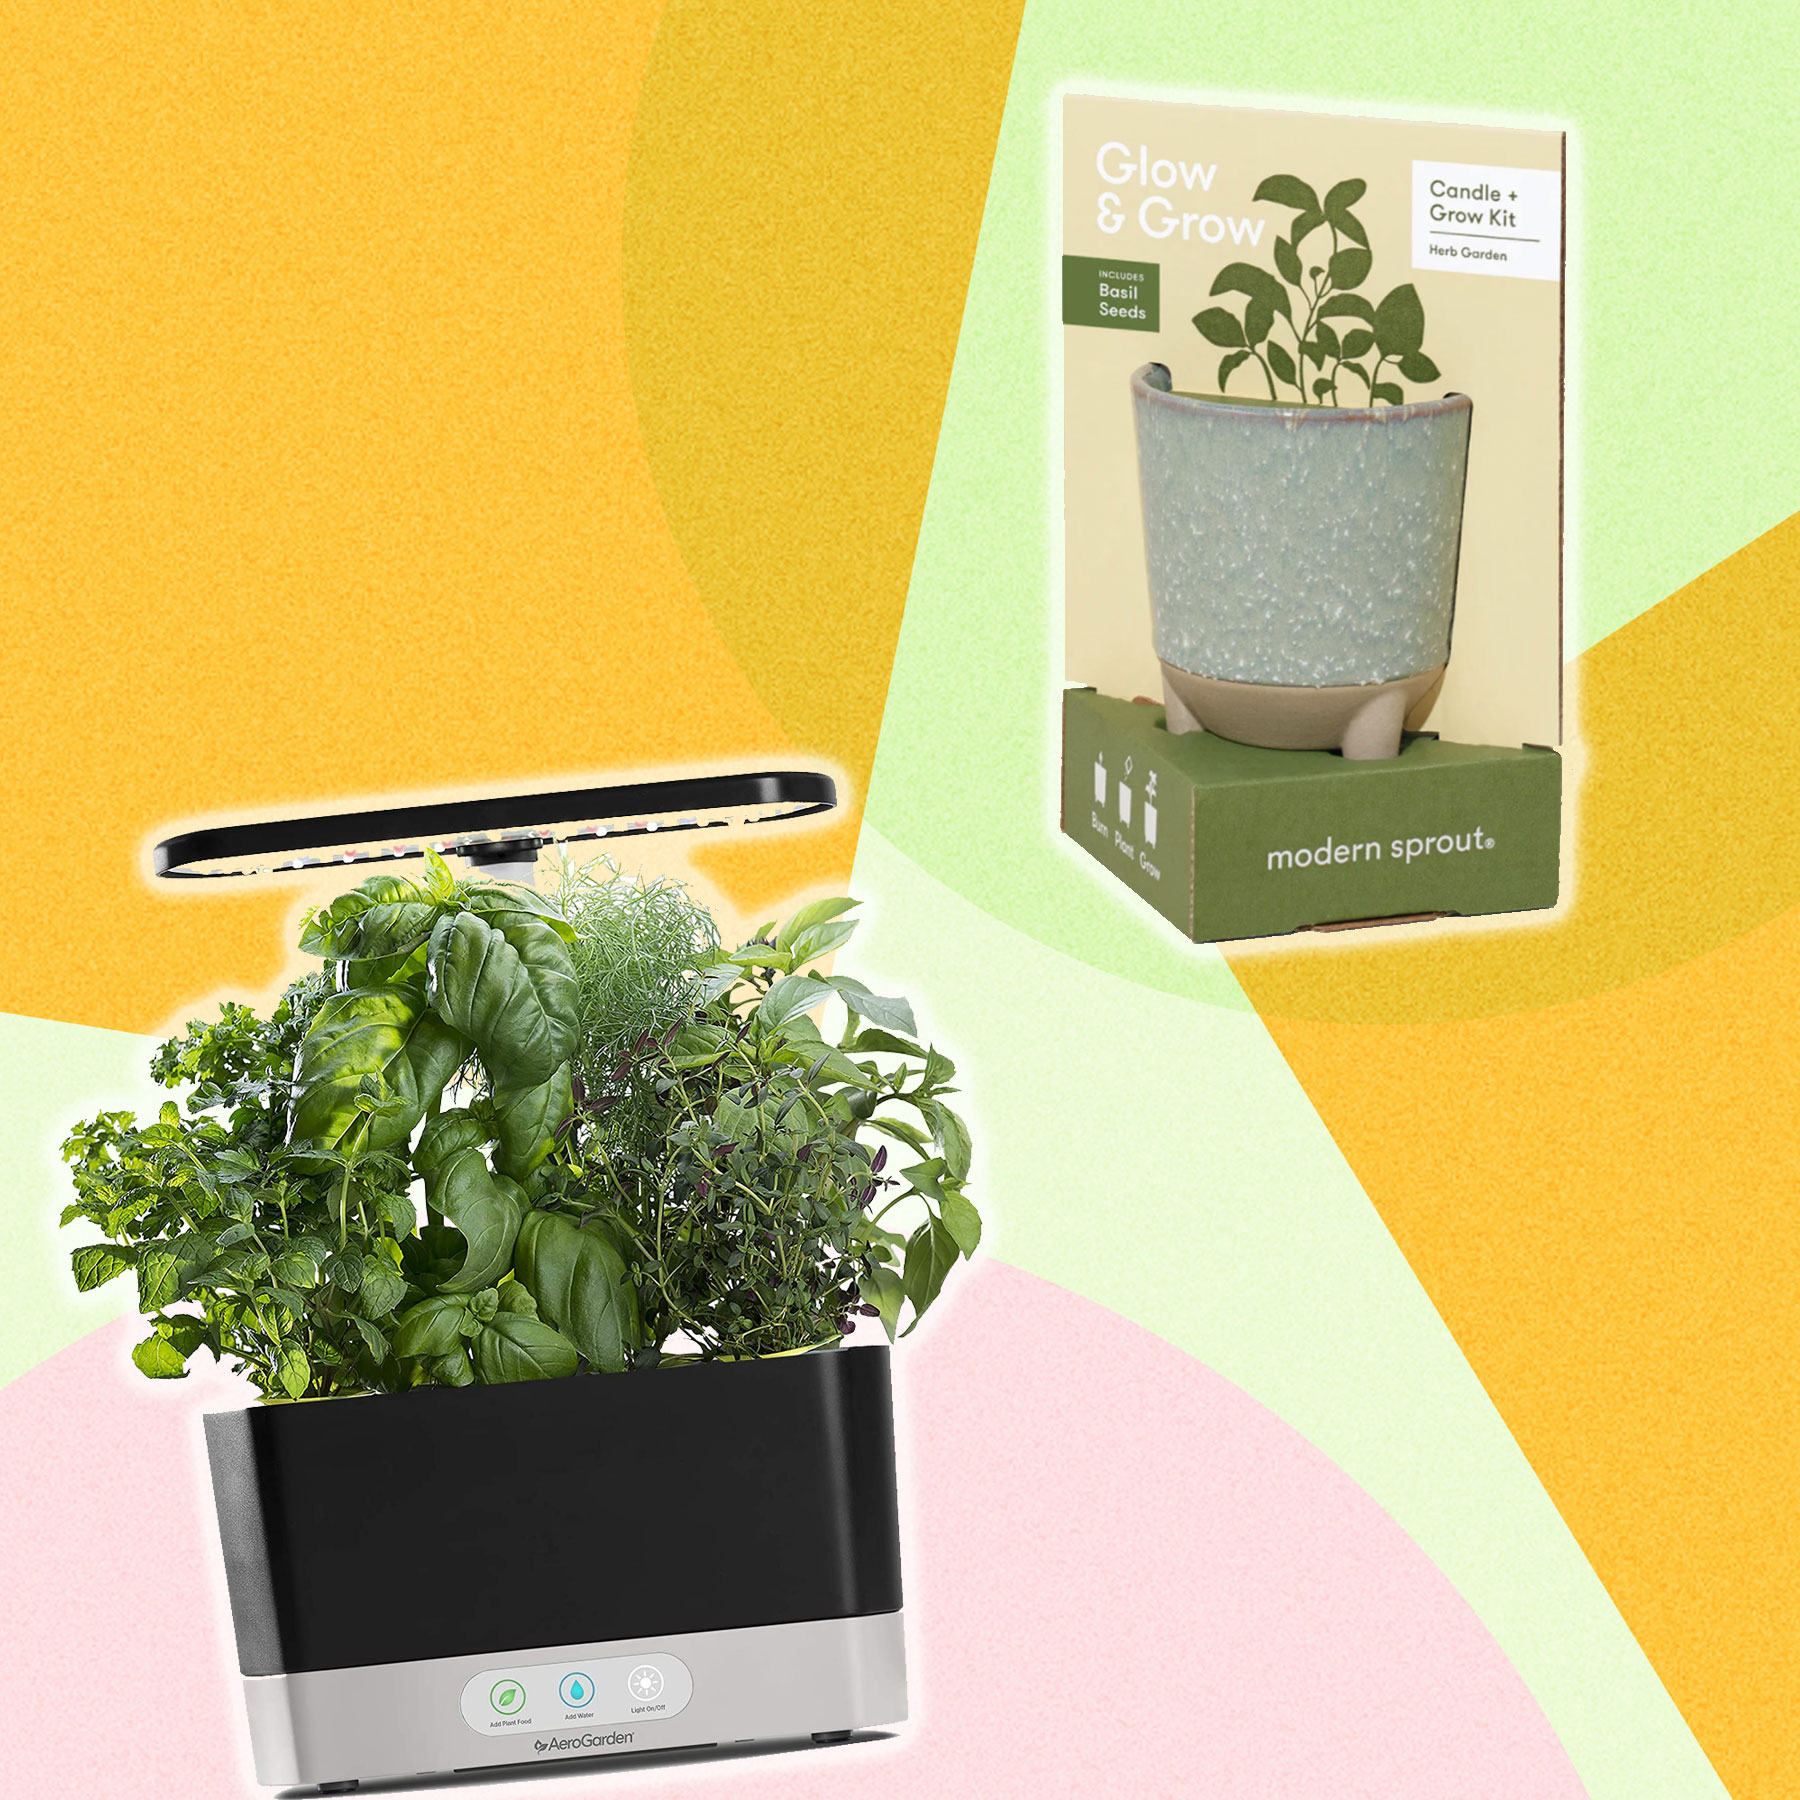 https://www.eatingwell.com/article/7884325/the-best-herb-garden-kits-for-every-type-of-gardener-even-if-you-kill-every-houseplant-you-ve-ever-met/herb-garden-kits/